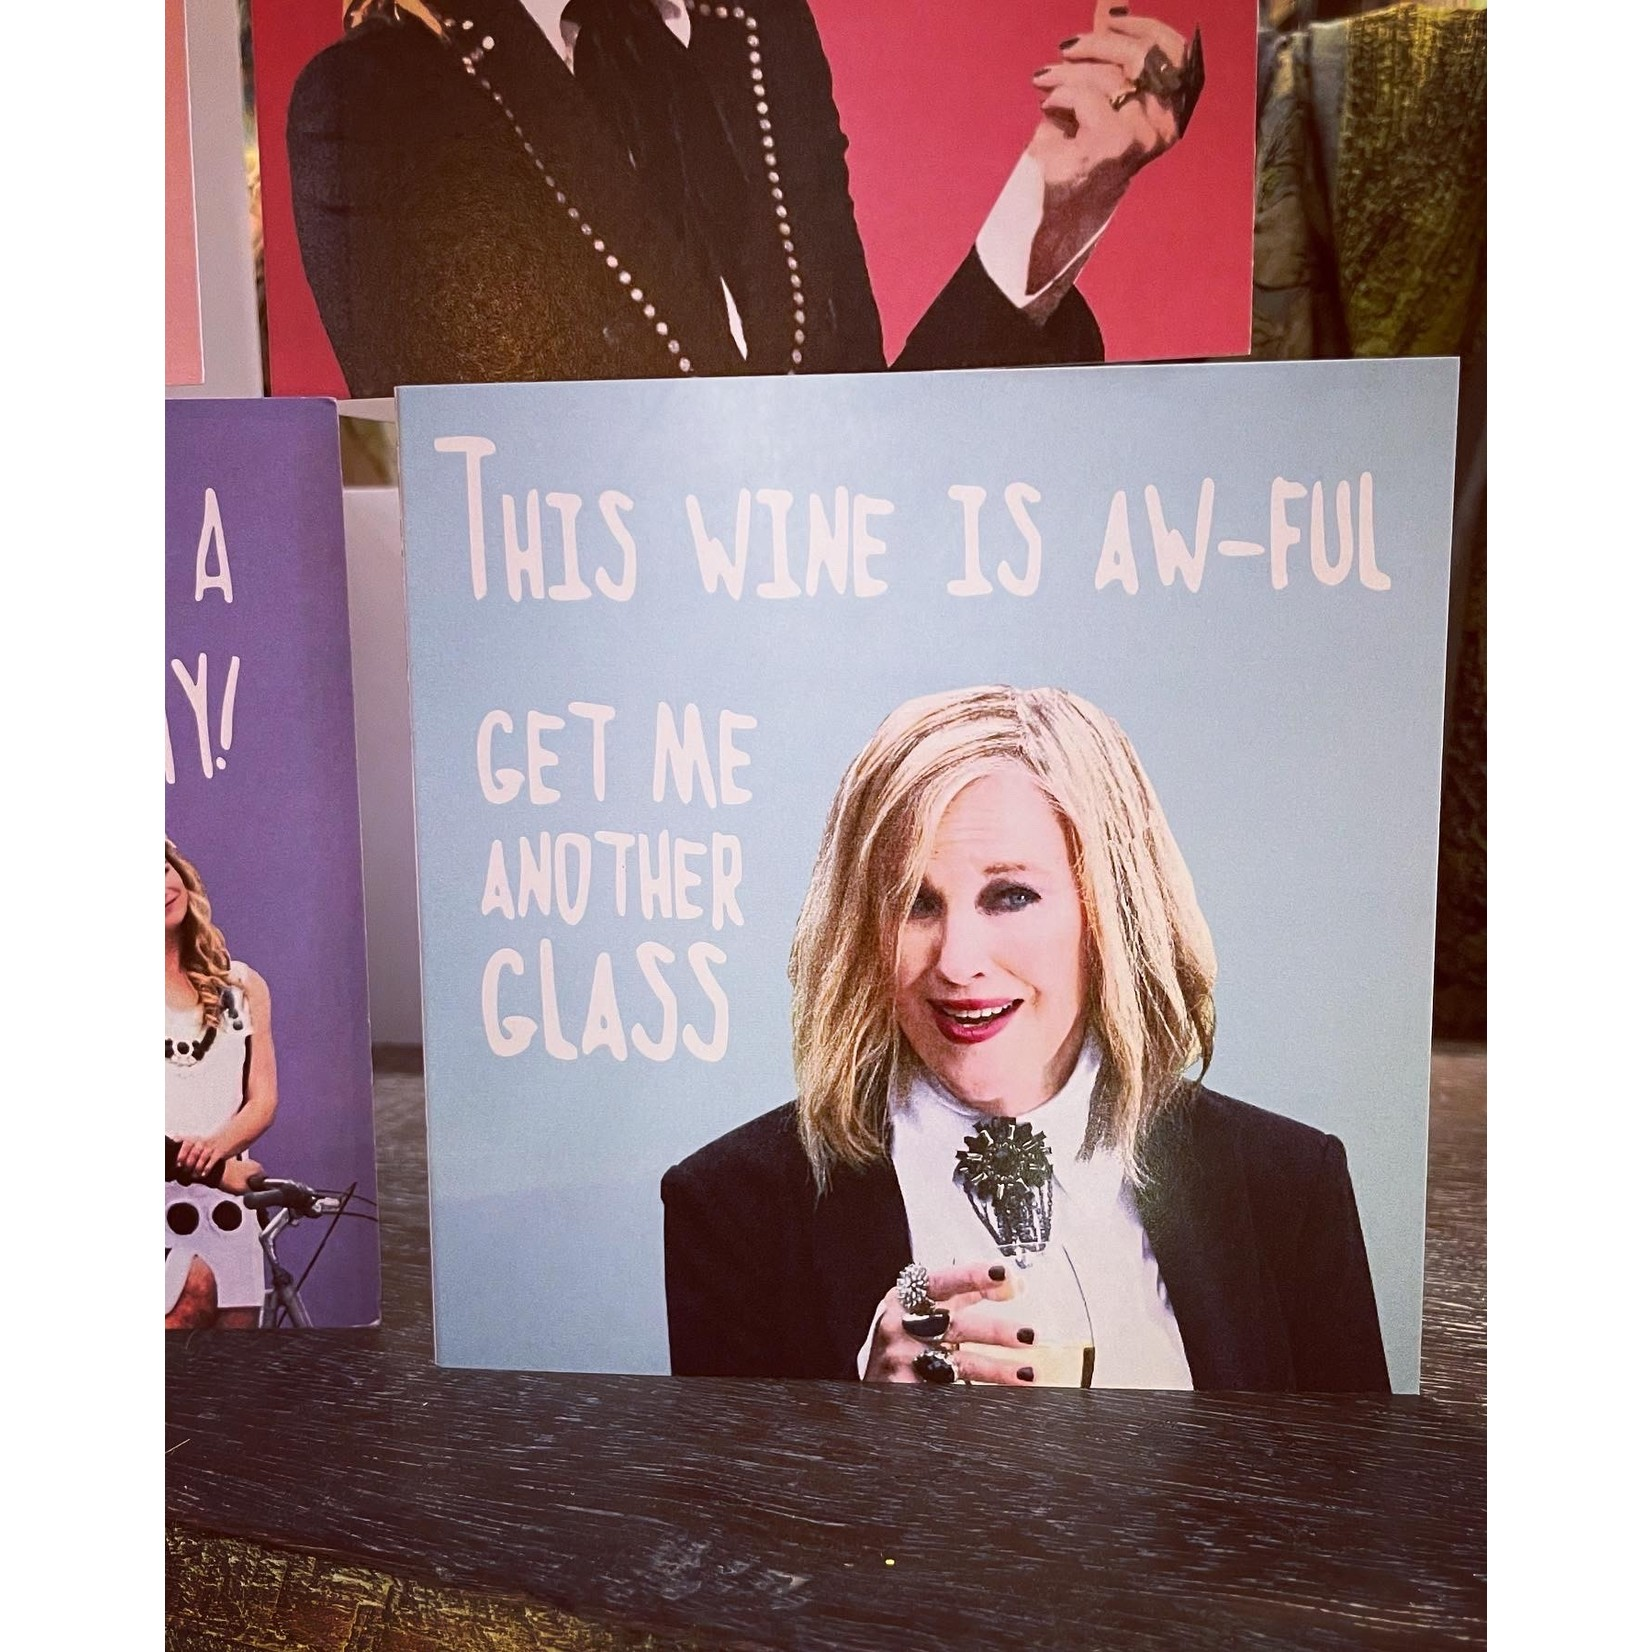 Homebird This Wine Is Aw-ful, Get me another Glass - Moira Rose from the hit series Schitt's Creek